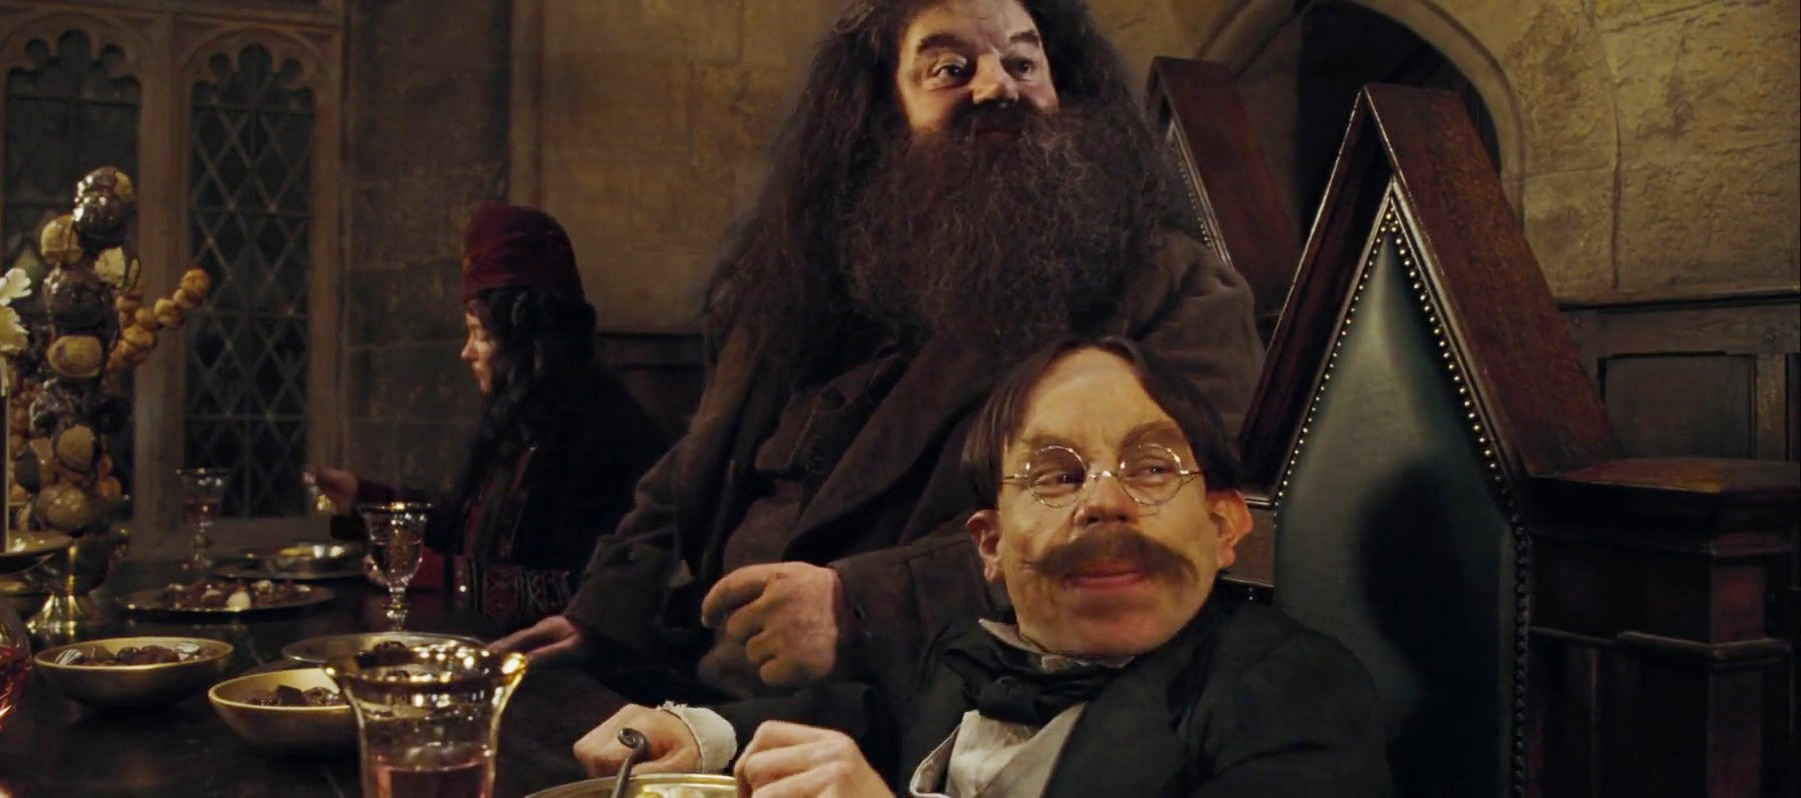 Harry Potter director reveals his one regret about Hagrid that we've all been wondering